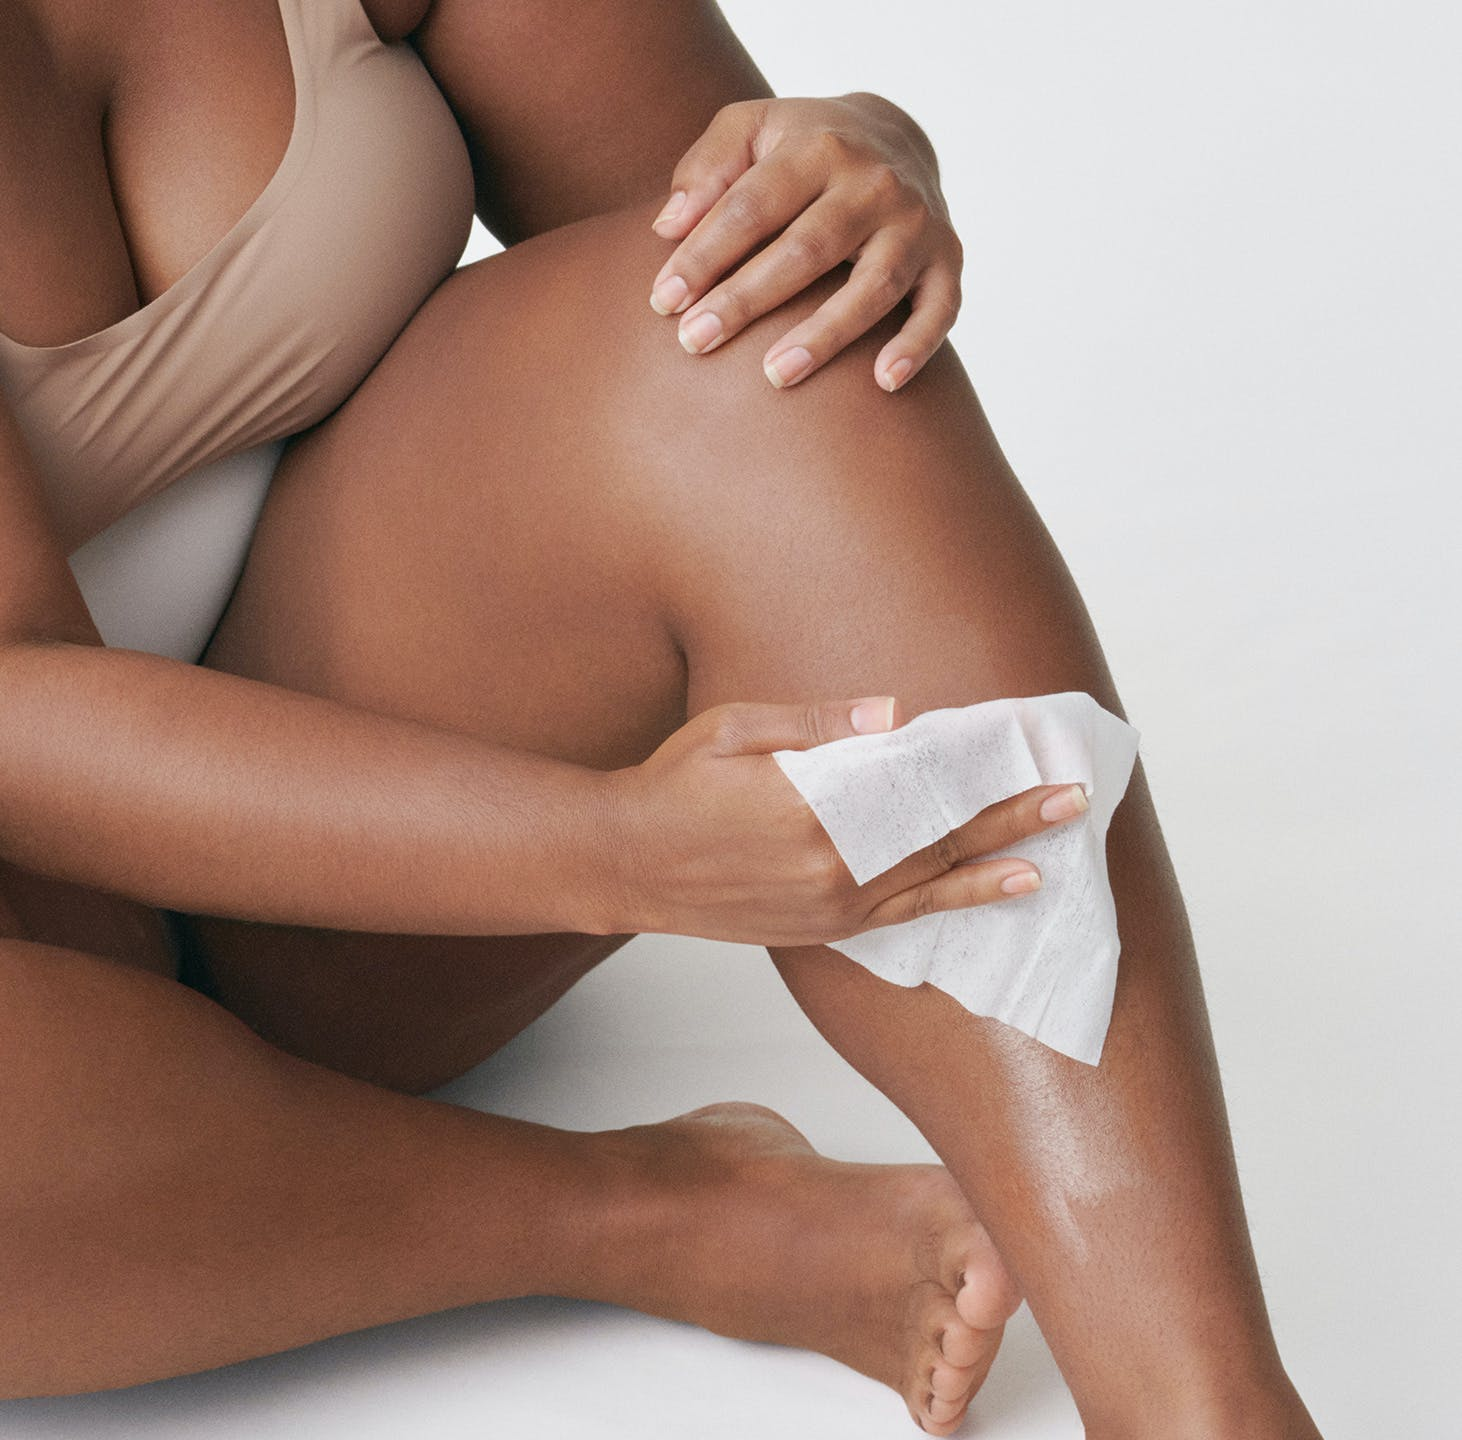 Woman removing excess wax with post wax cloth.